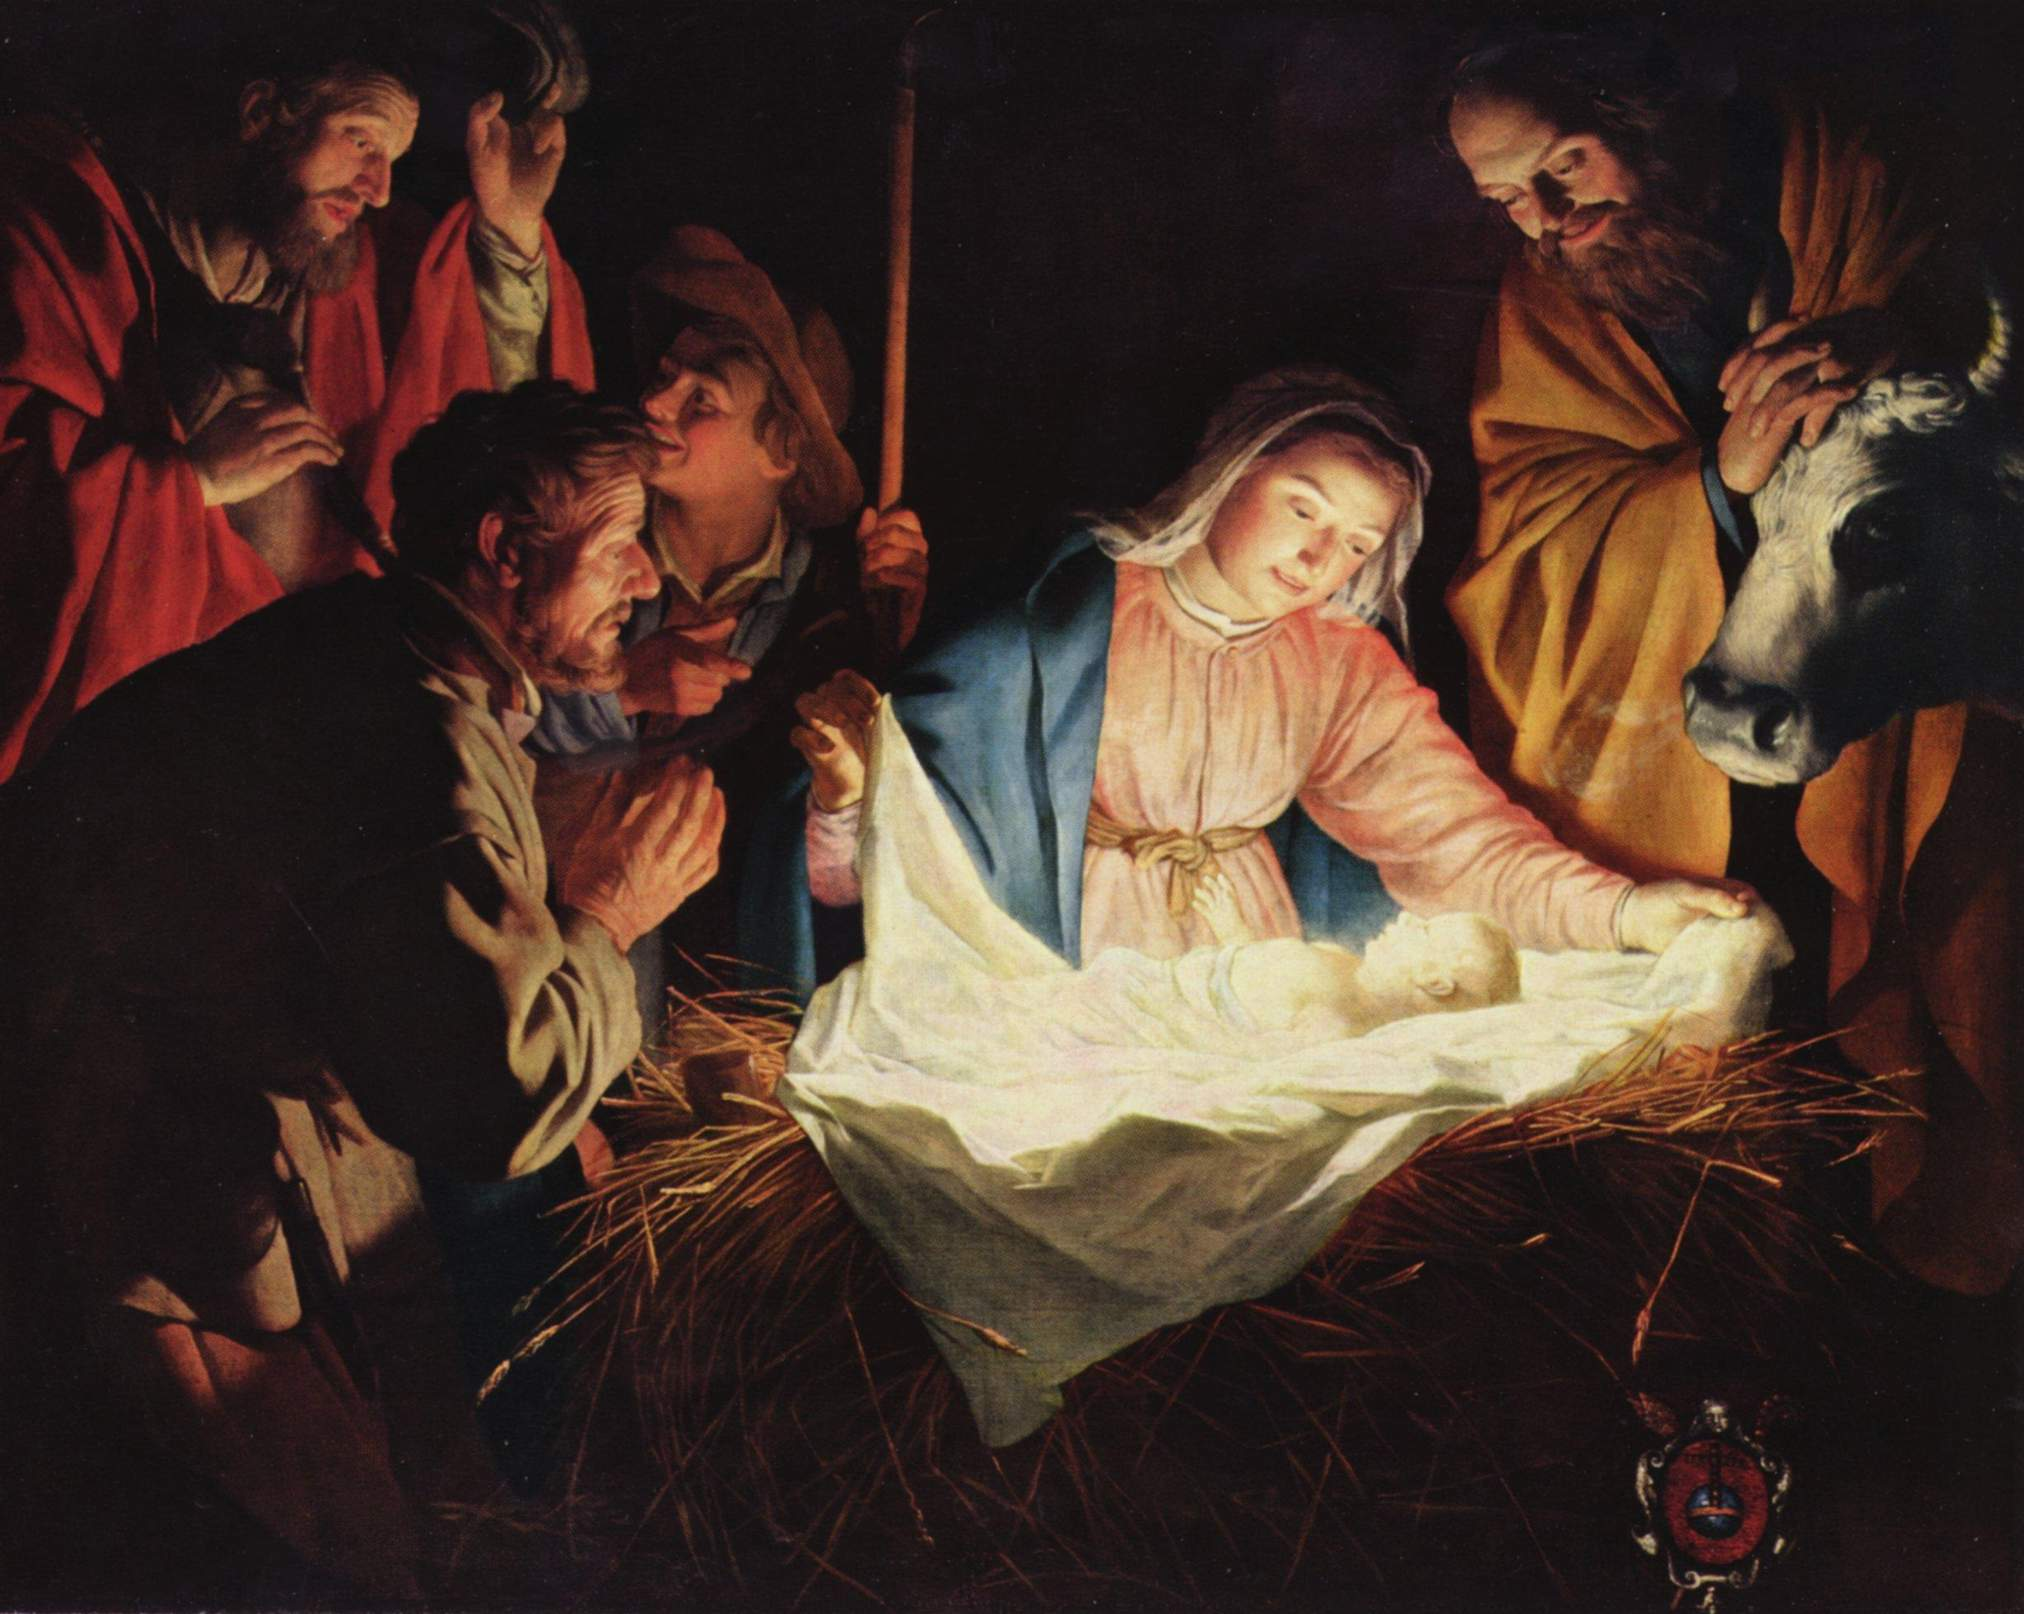 The Birth of the Christ